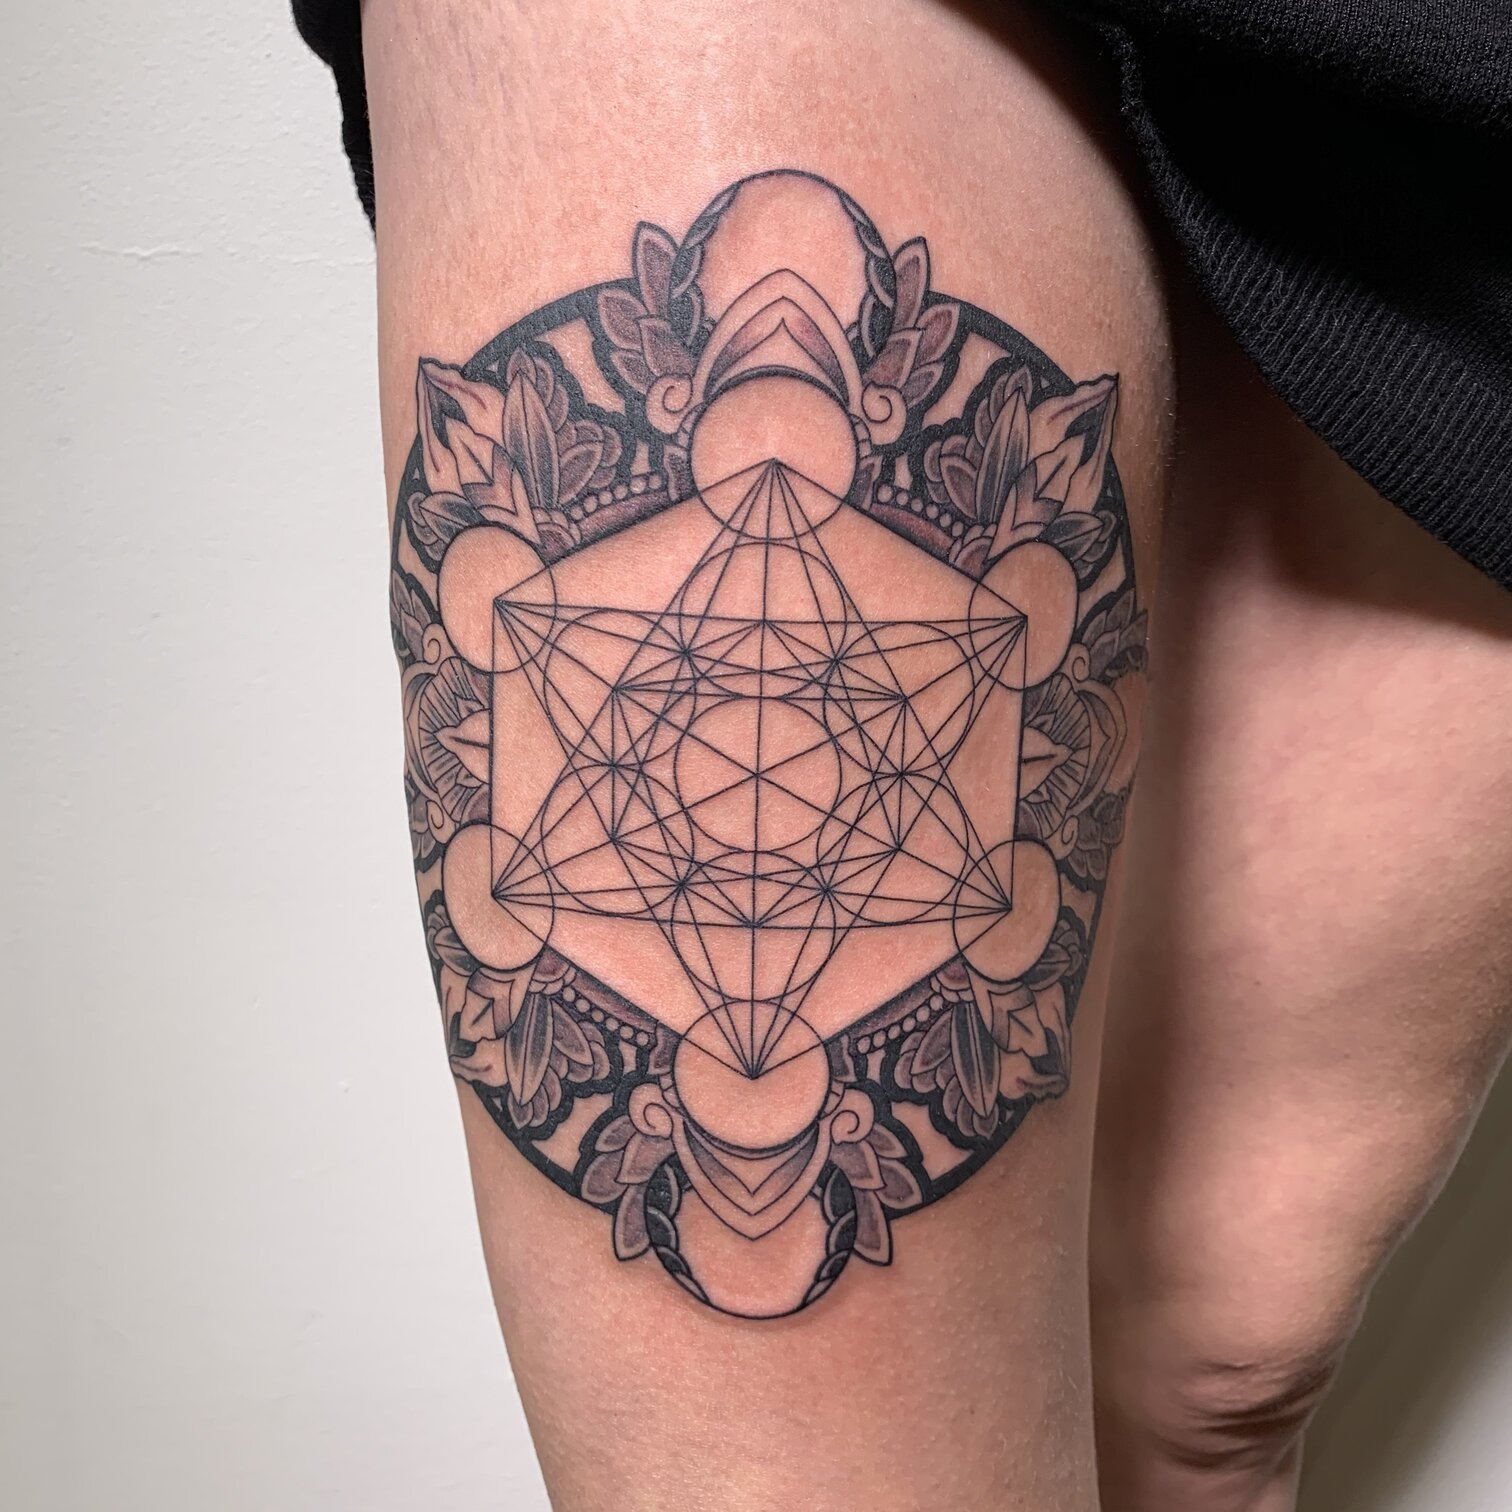 bims-kaizoku-tattoo-artist-geometrical-arm